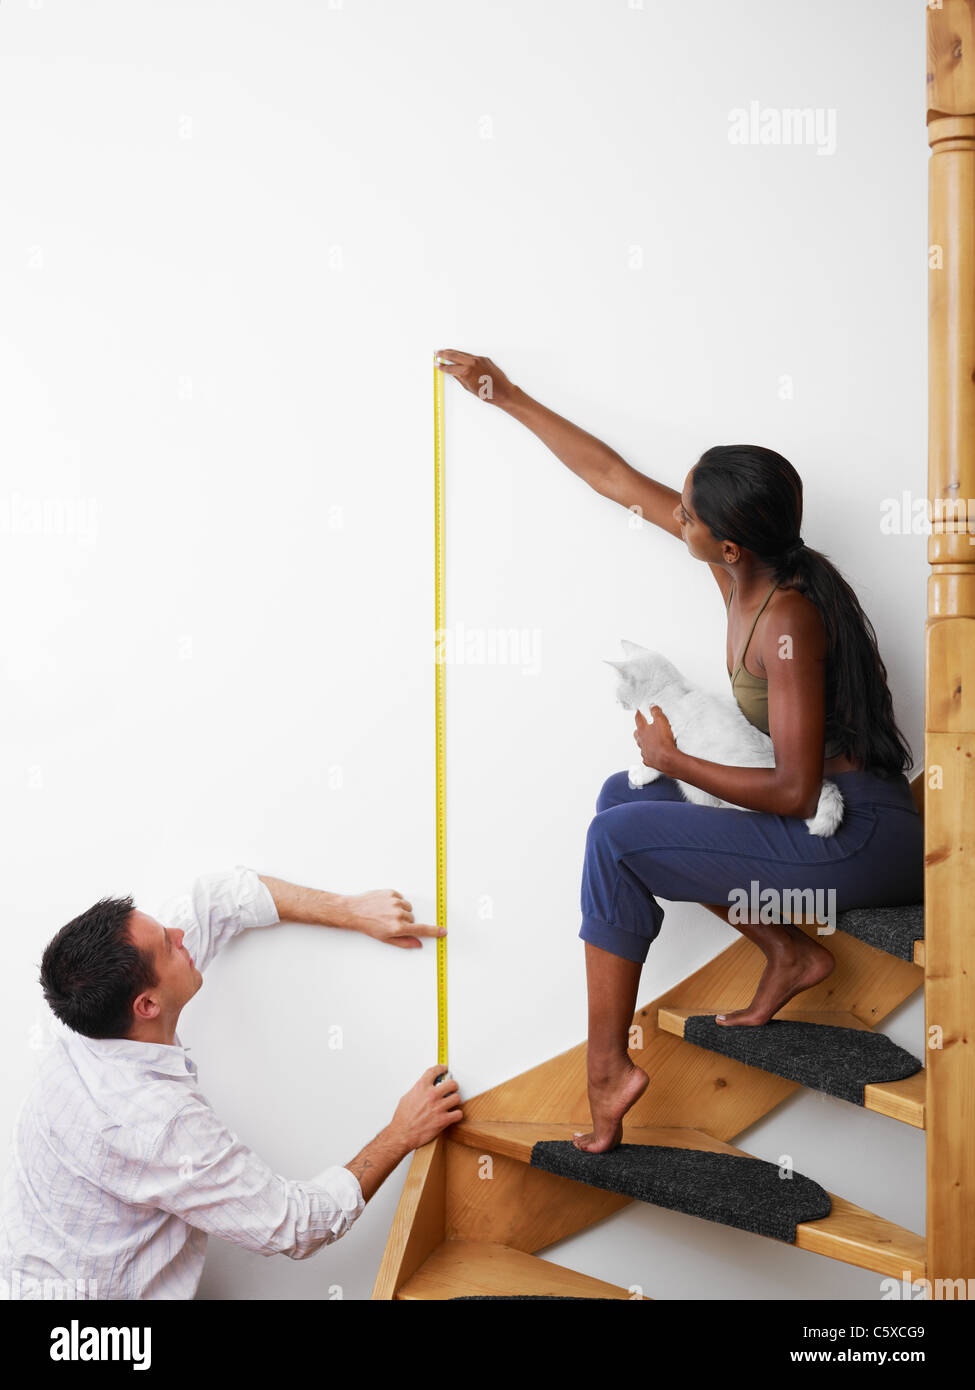 Do it yourself: couple measuring wall to hang picture at home. Vertical shape, copy space - Stock Image